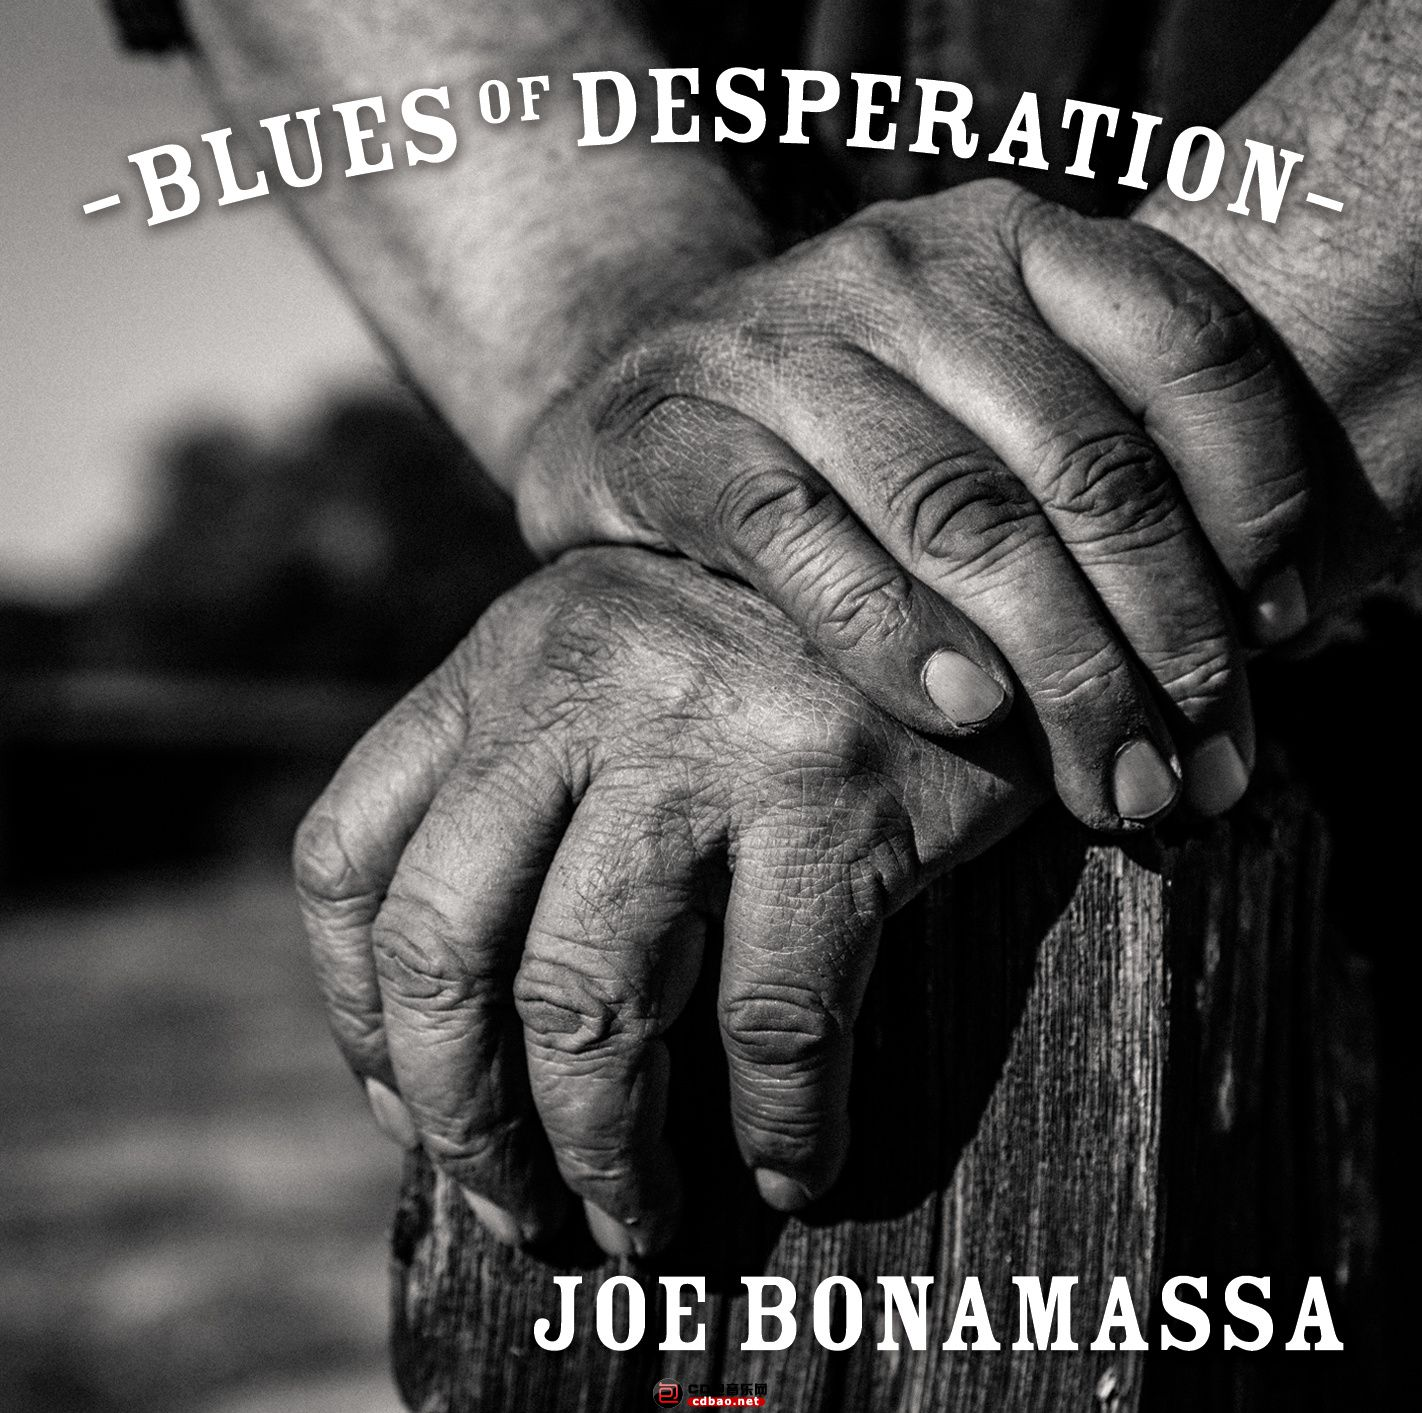 joe-bonamassa-blues-of-desperation.jpg